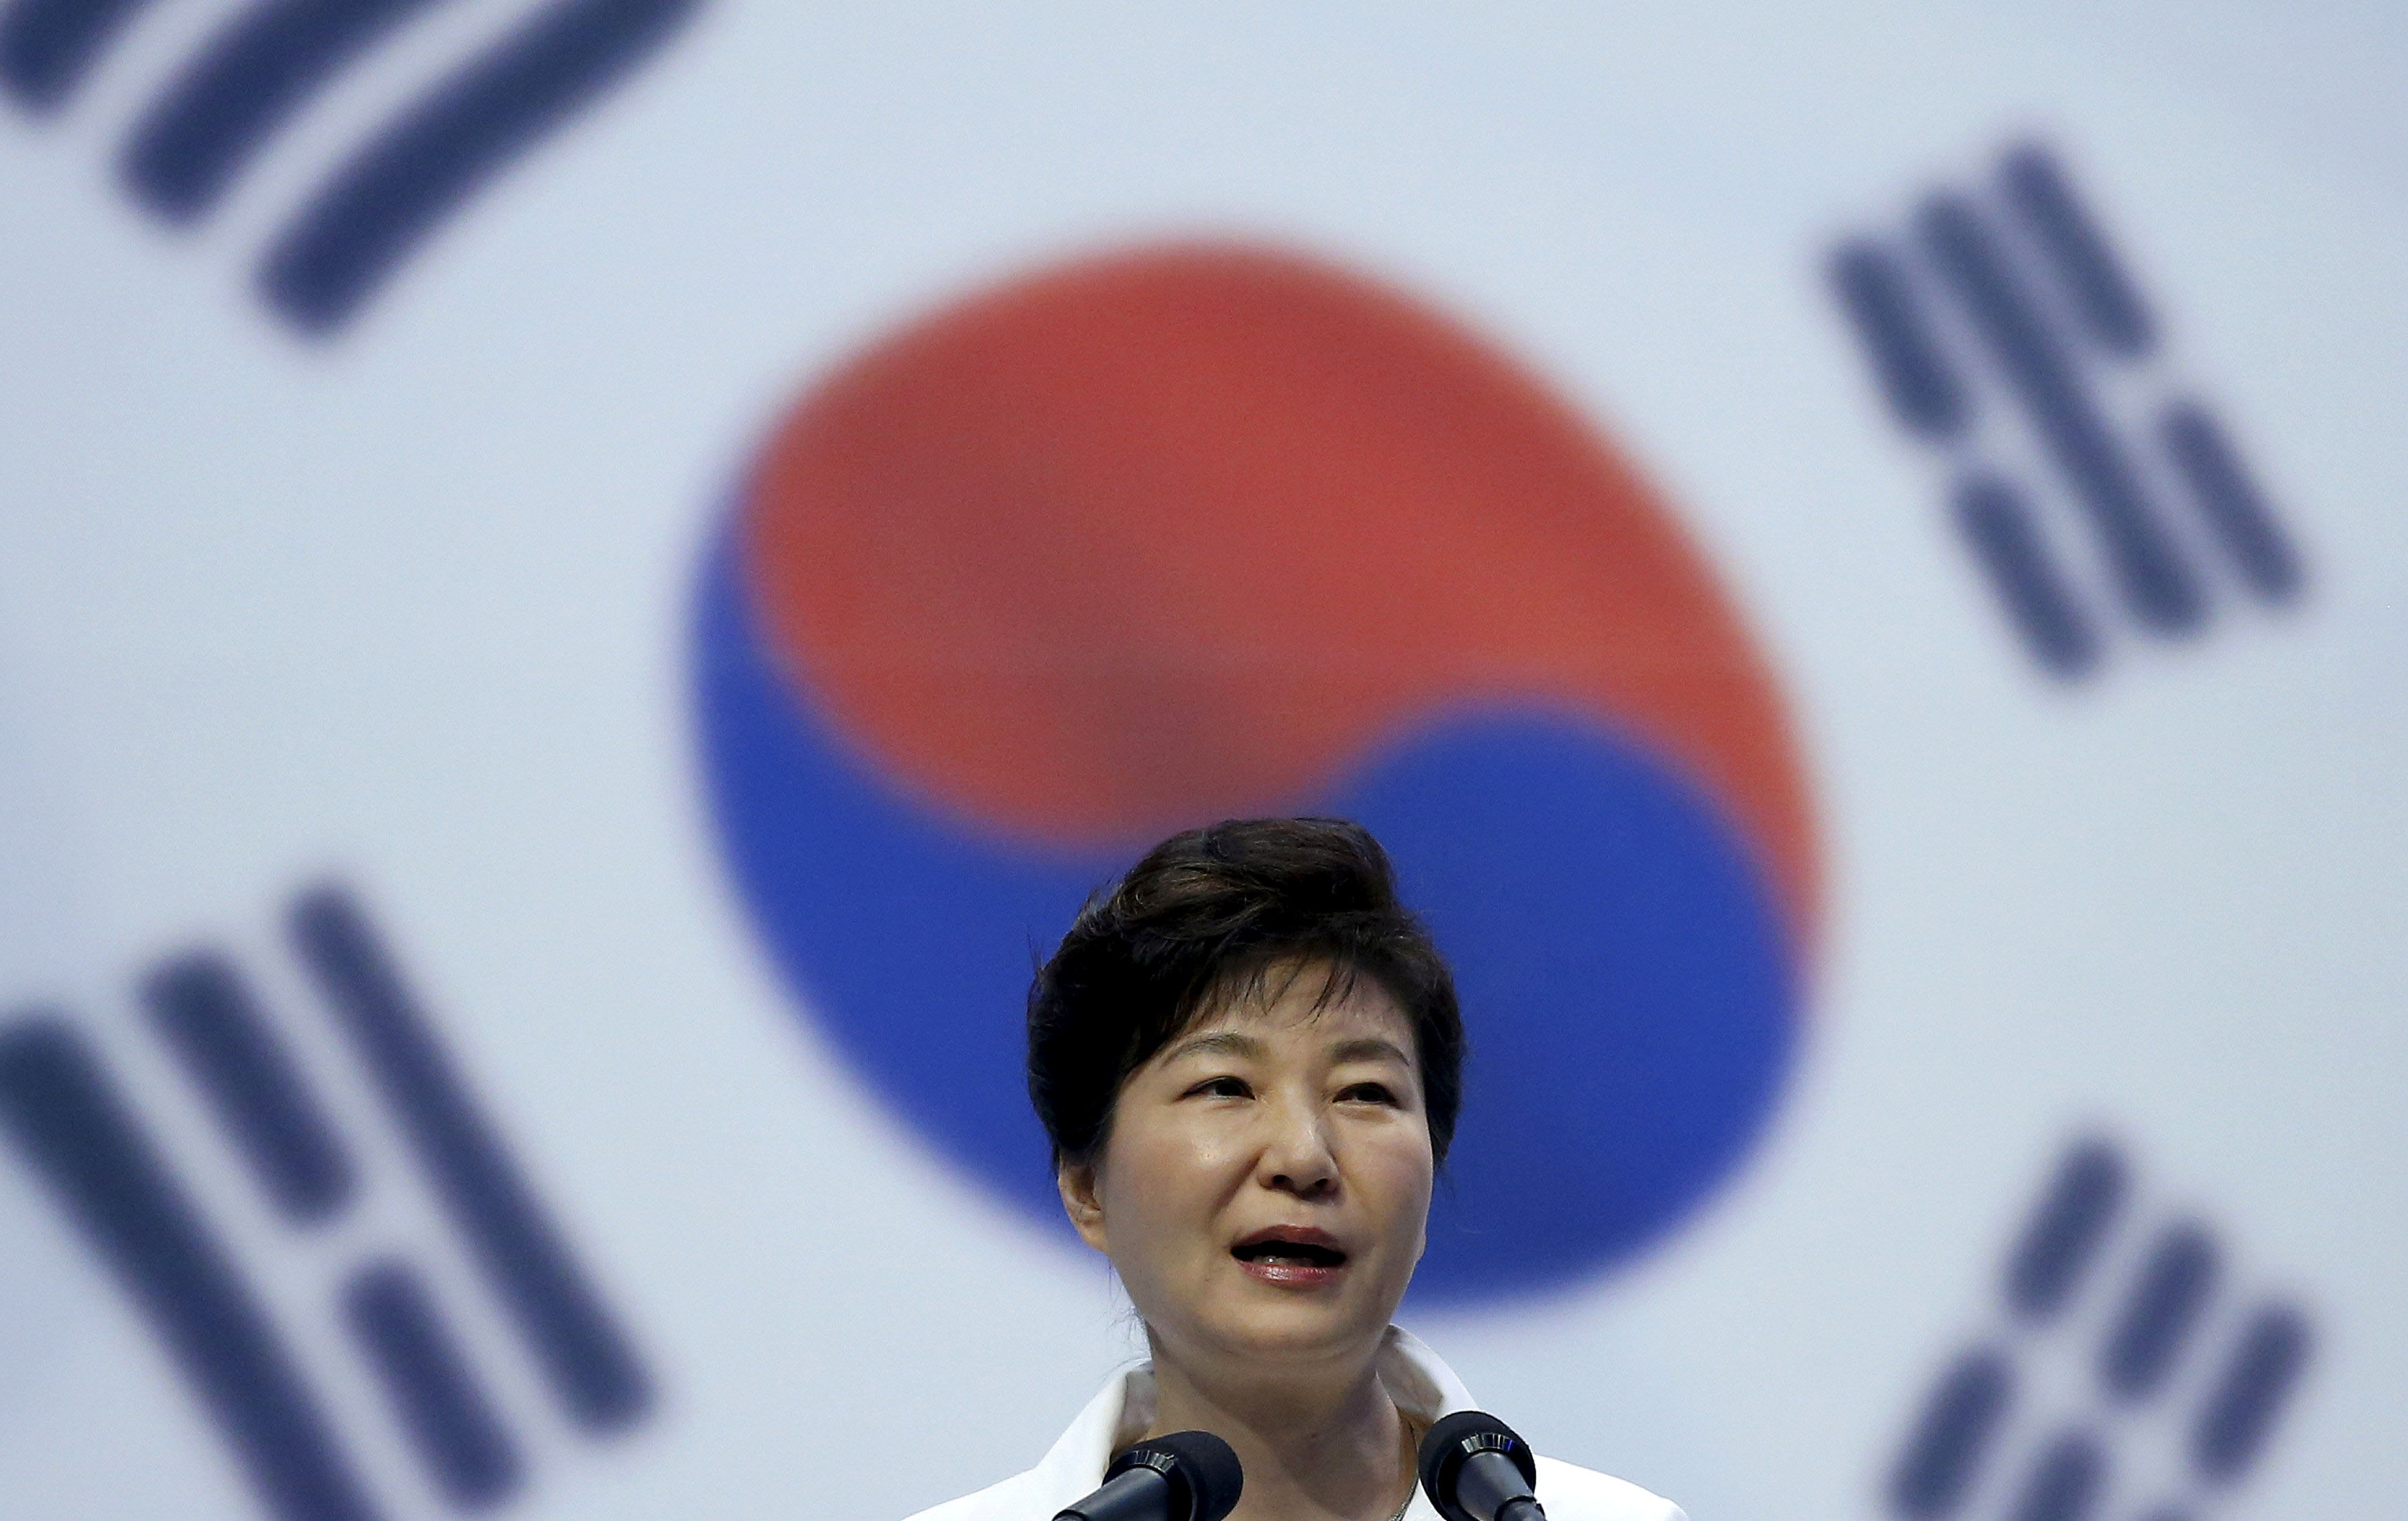 File - South Korean President Park Geun-hye speaks during a ceremony marking the 70th anniversary of the liberation from Japan's 1910-45 colonial rule, following the end of World War Two, on Liberation Day in Seoul, South Korea, on August 15, 2015. Photo: Reuters